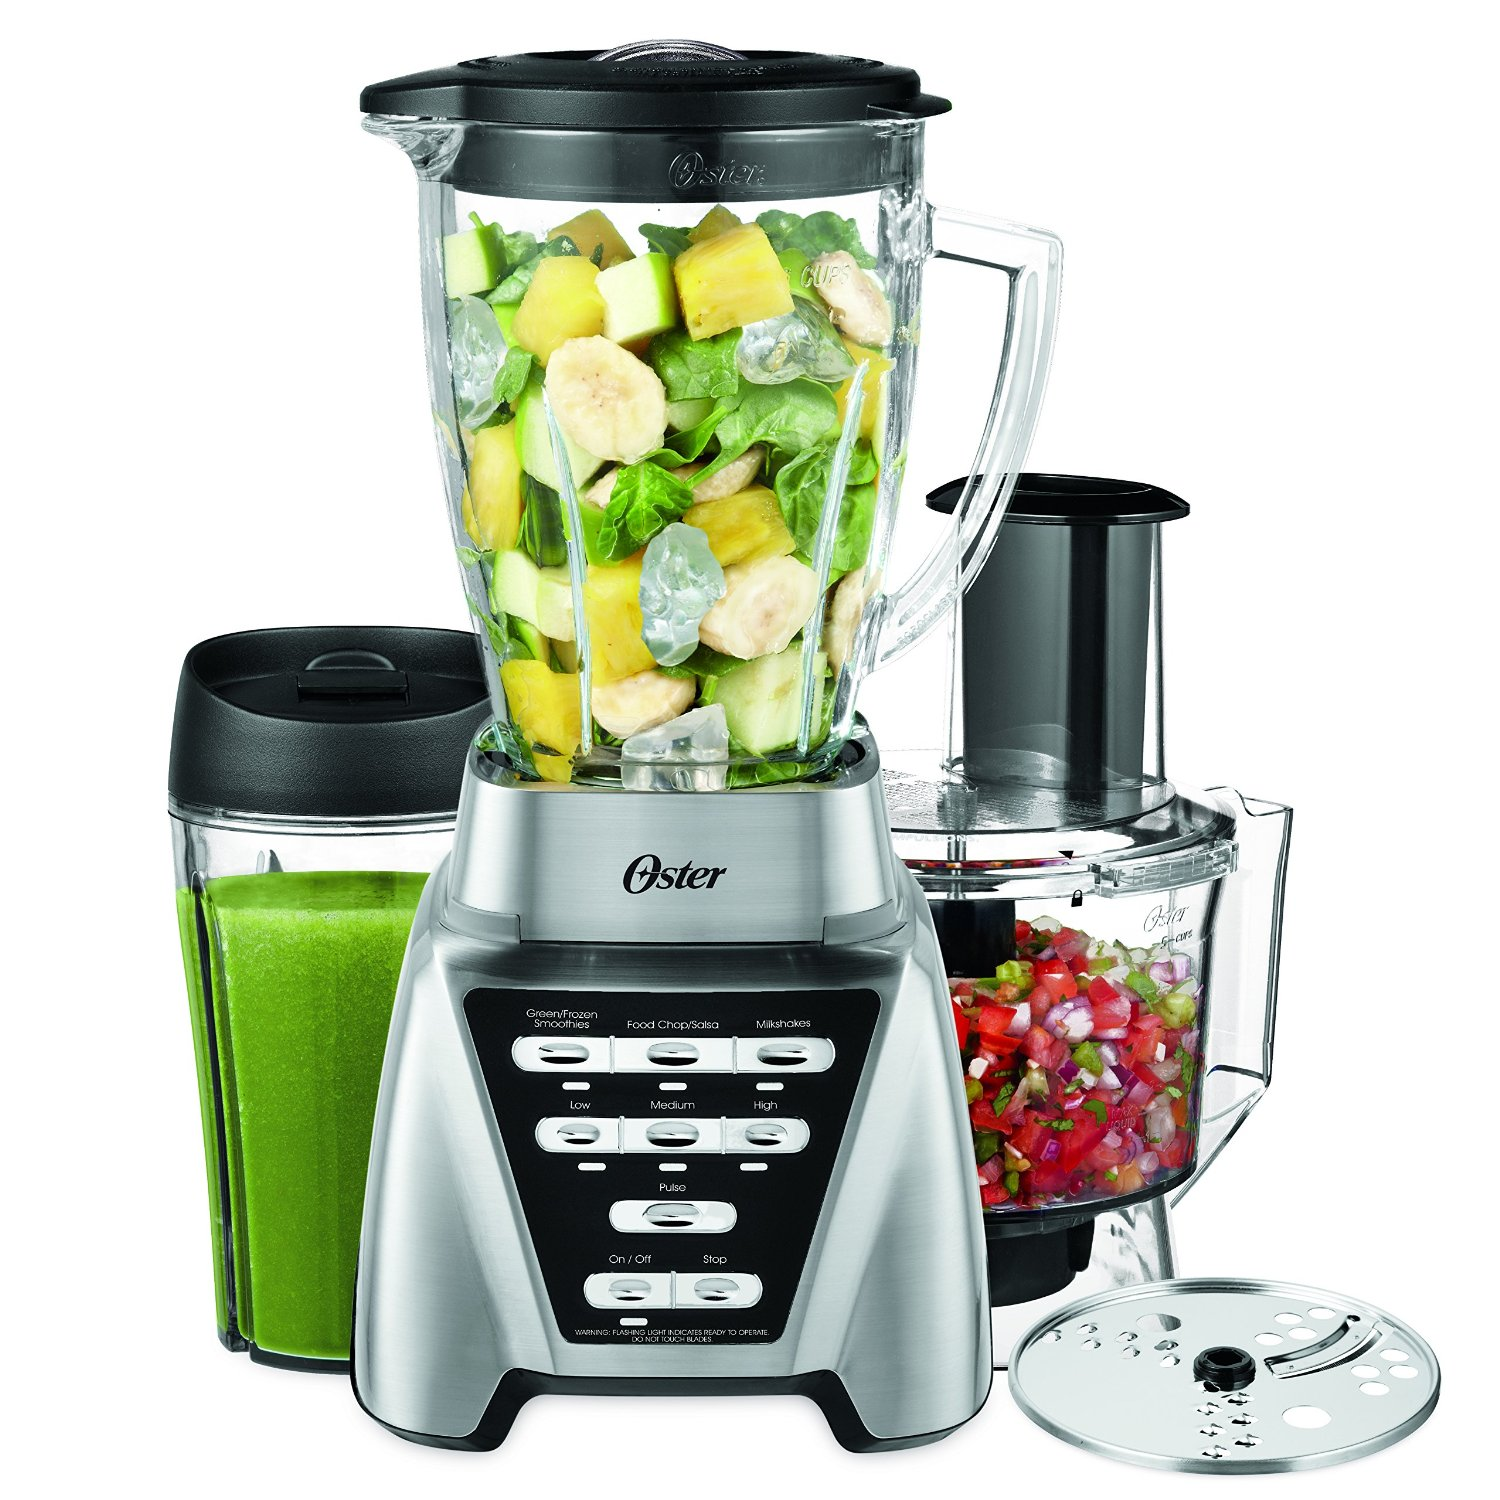 Top 10 Best Blenders For Smoothies